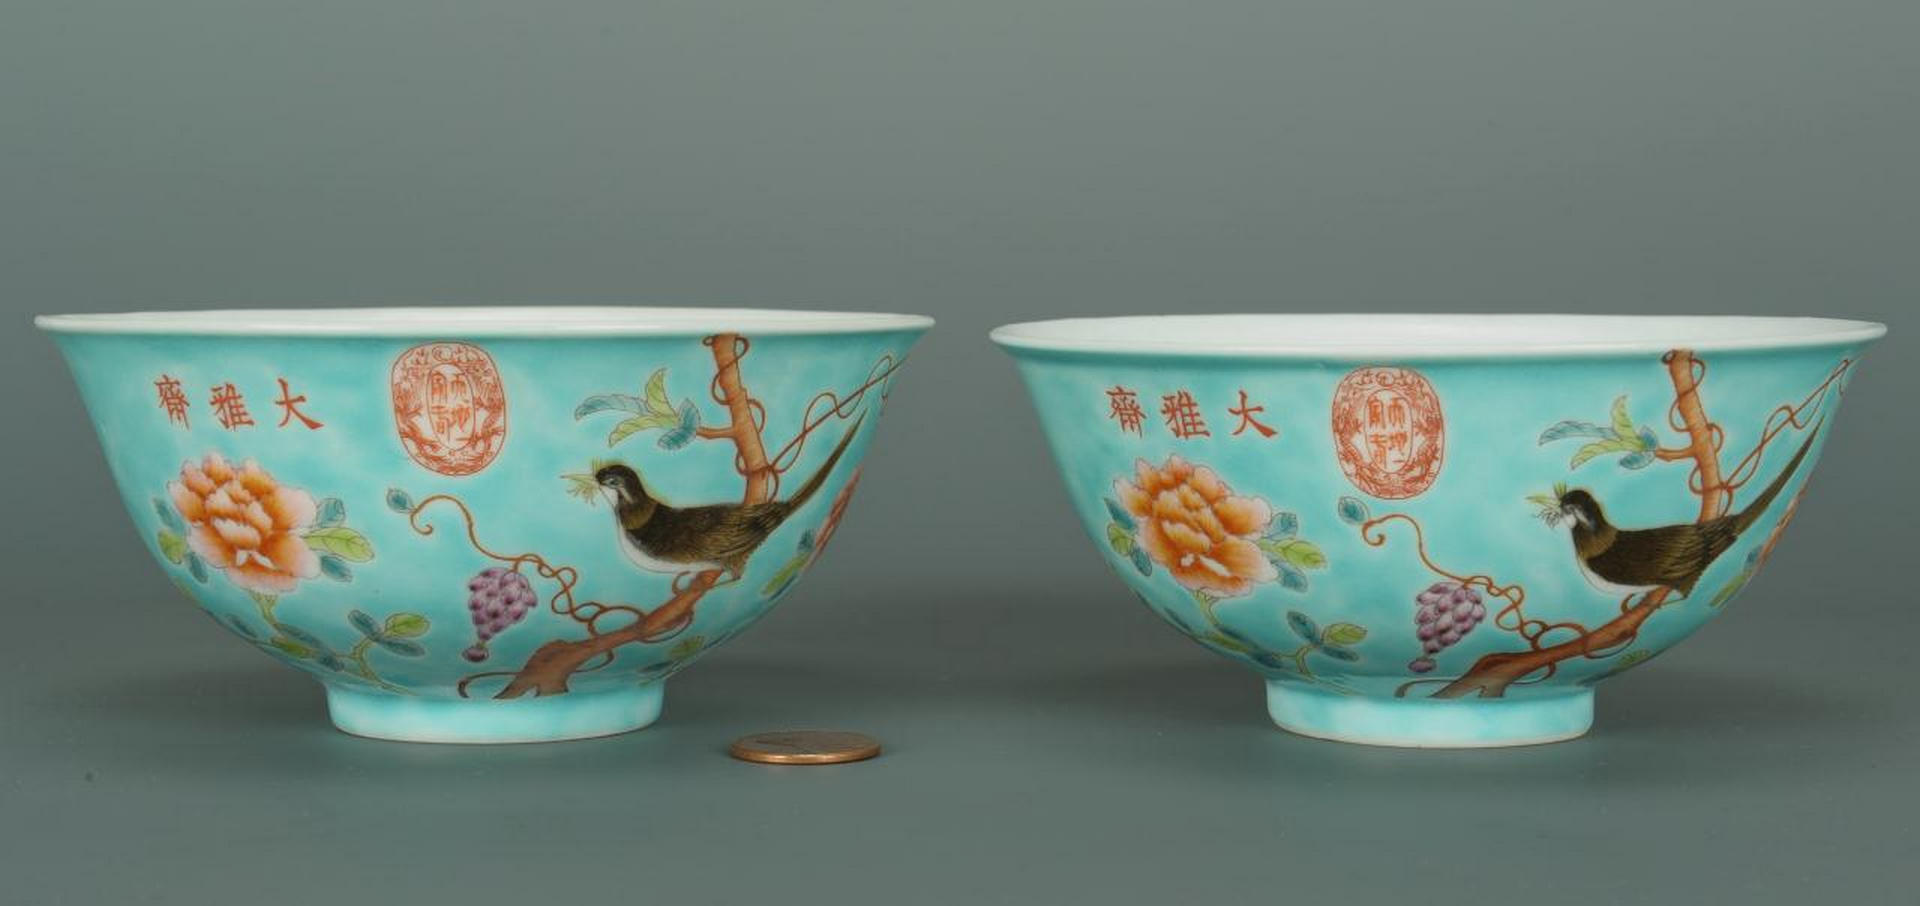 Lot 474: Pair Chinese Famille Rose Bowls, Bird decoration